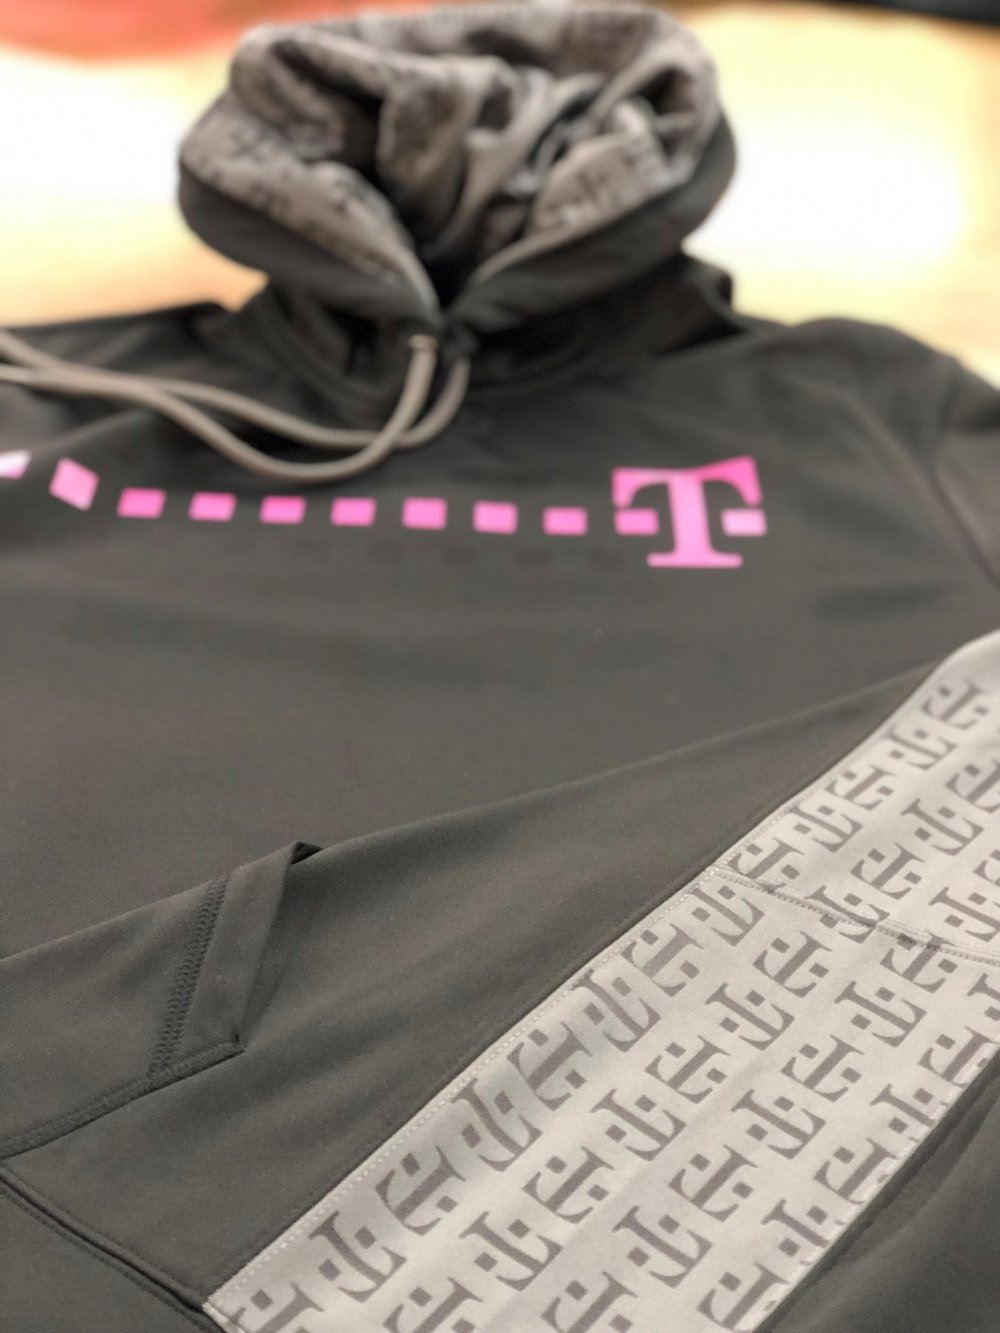 Laser Etched Hoodie for T-Mobile